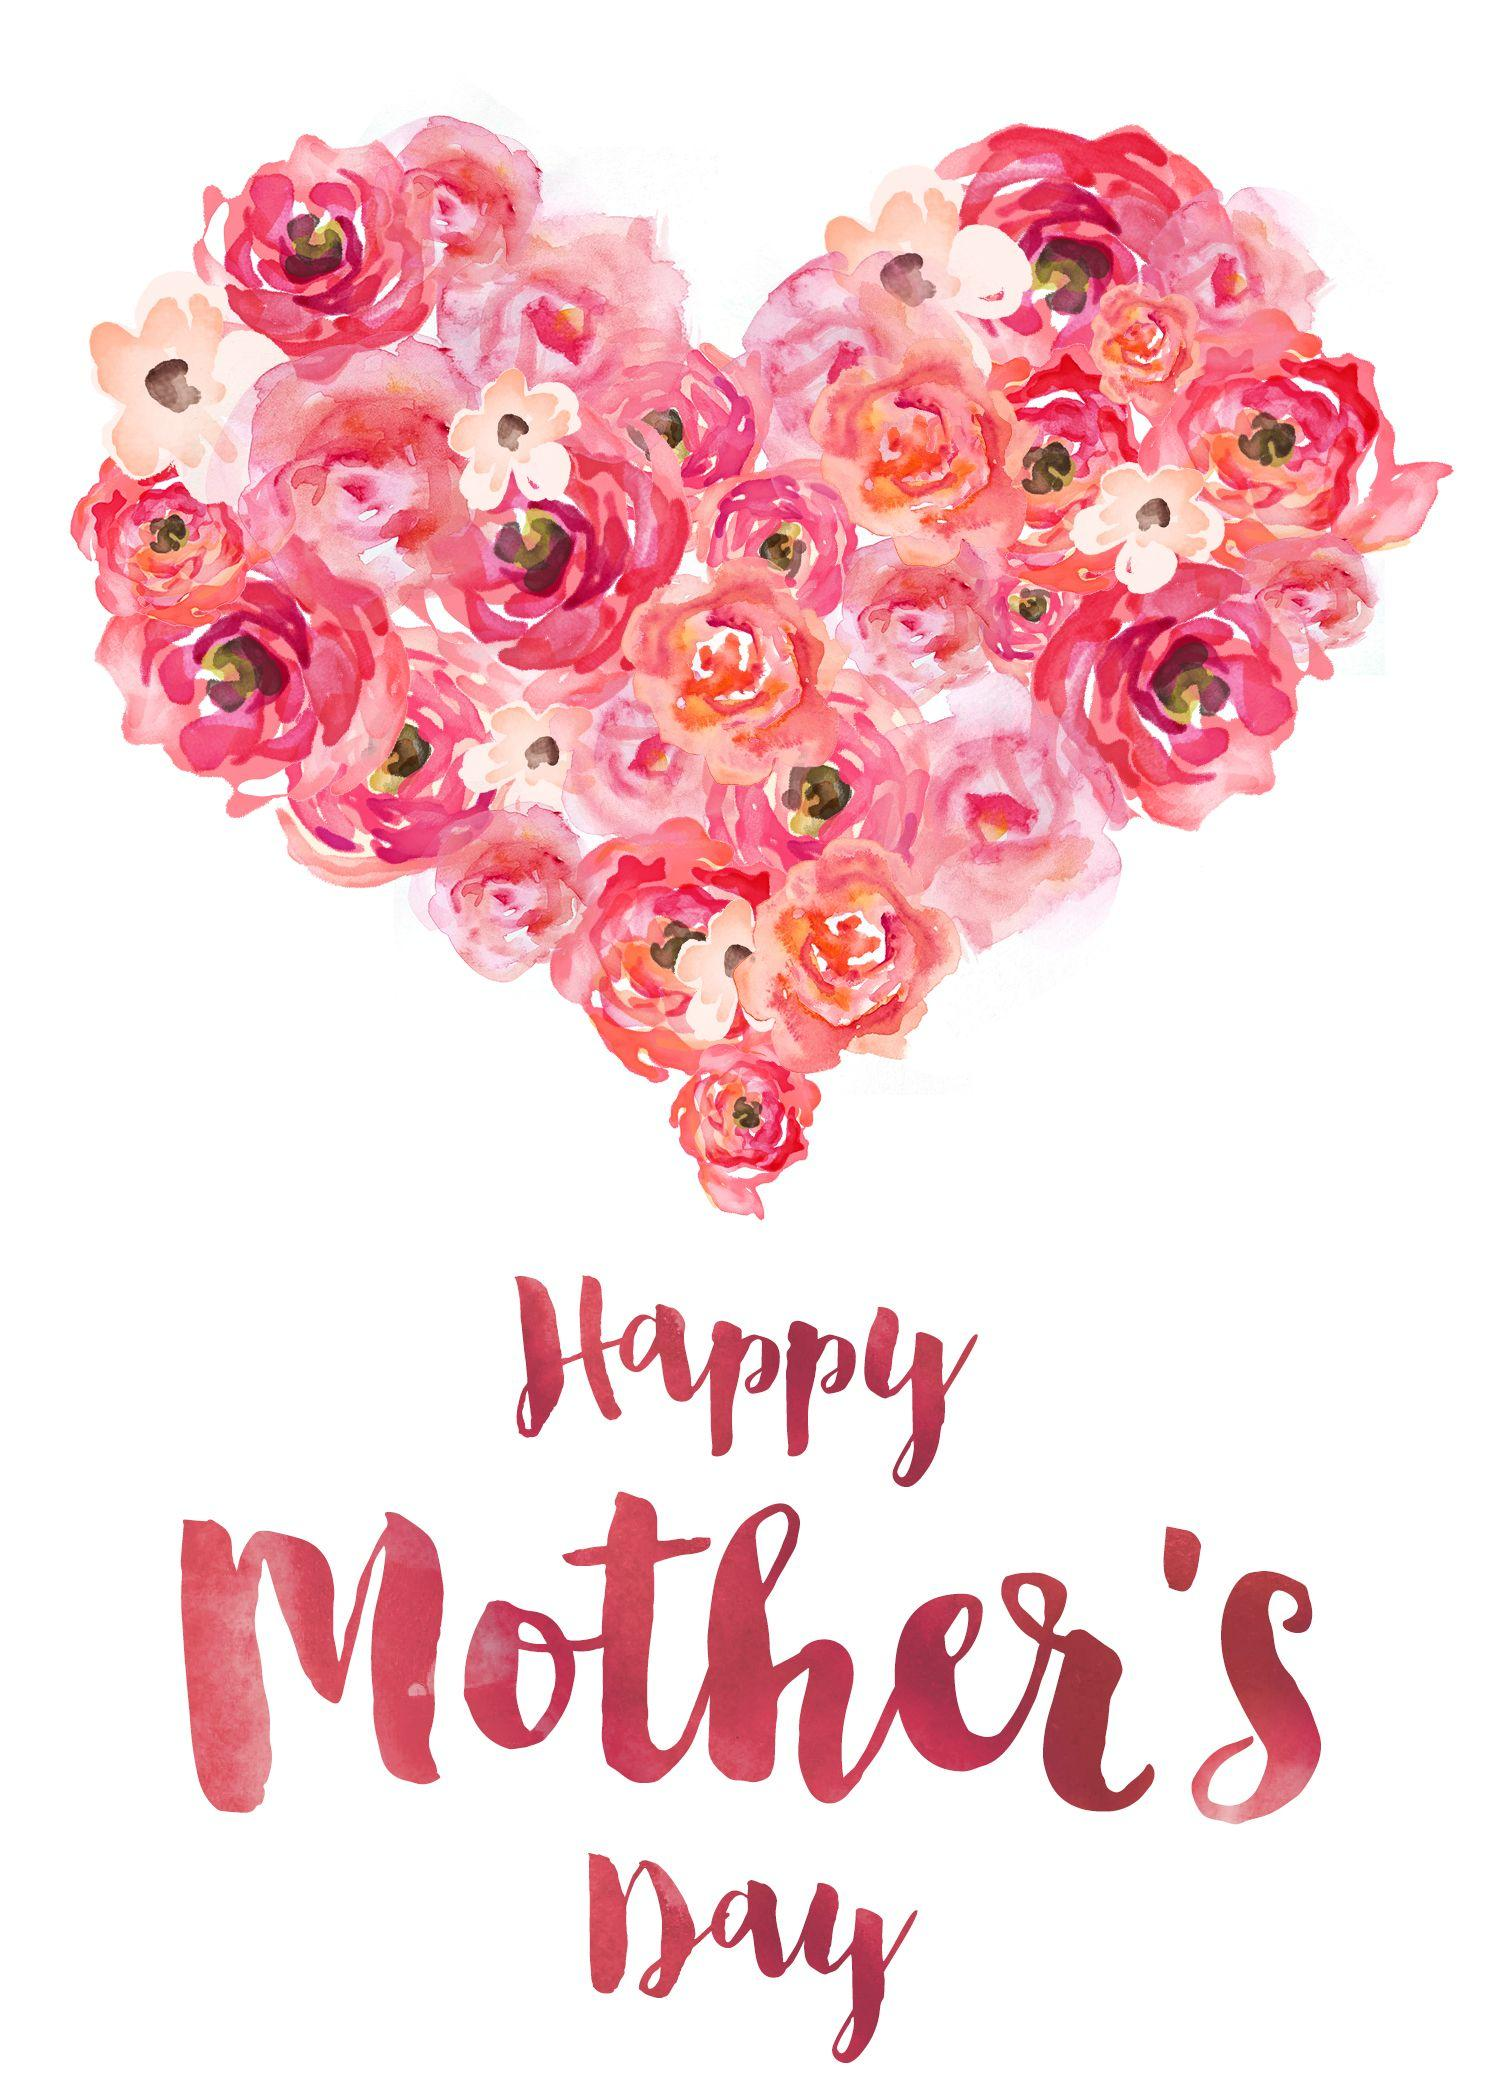 4 Easy Mother's Day Ideas - by Michelle Taw [Infographic]